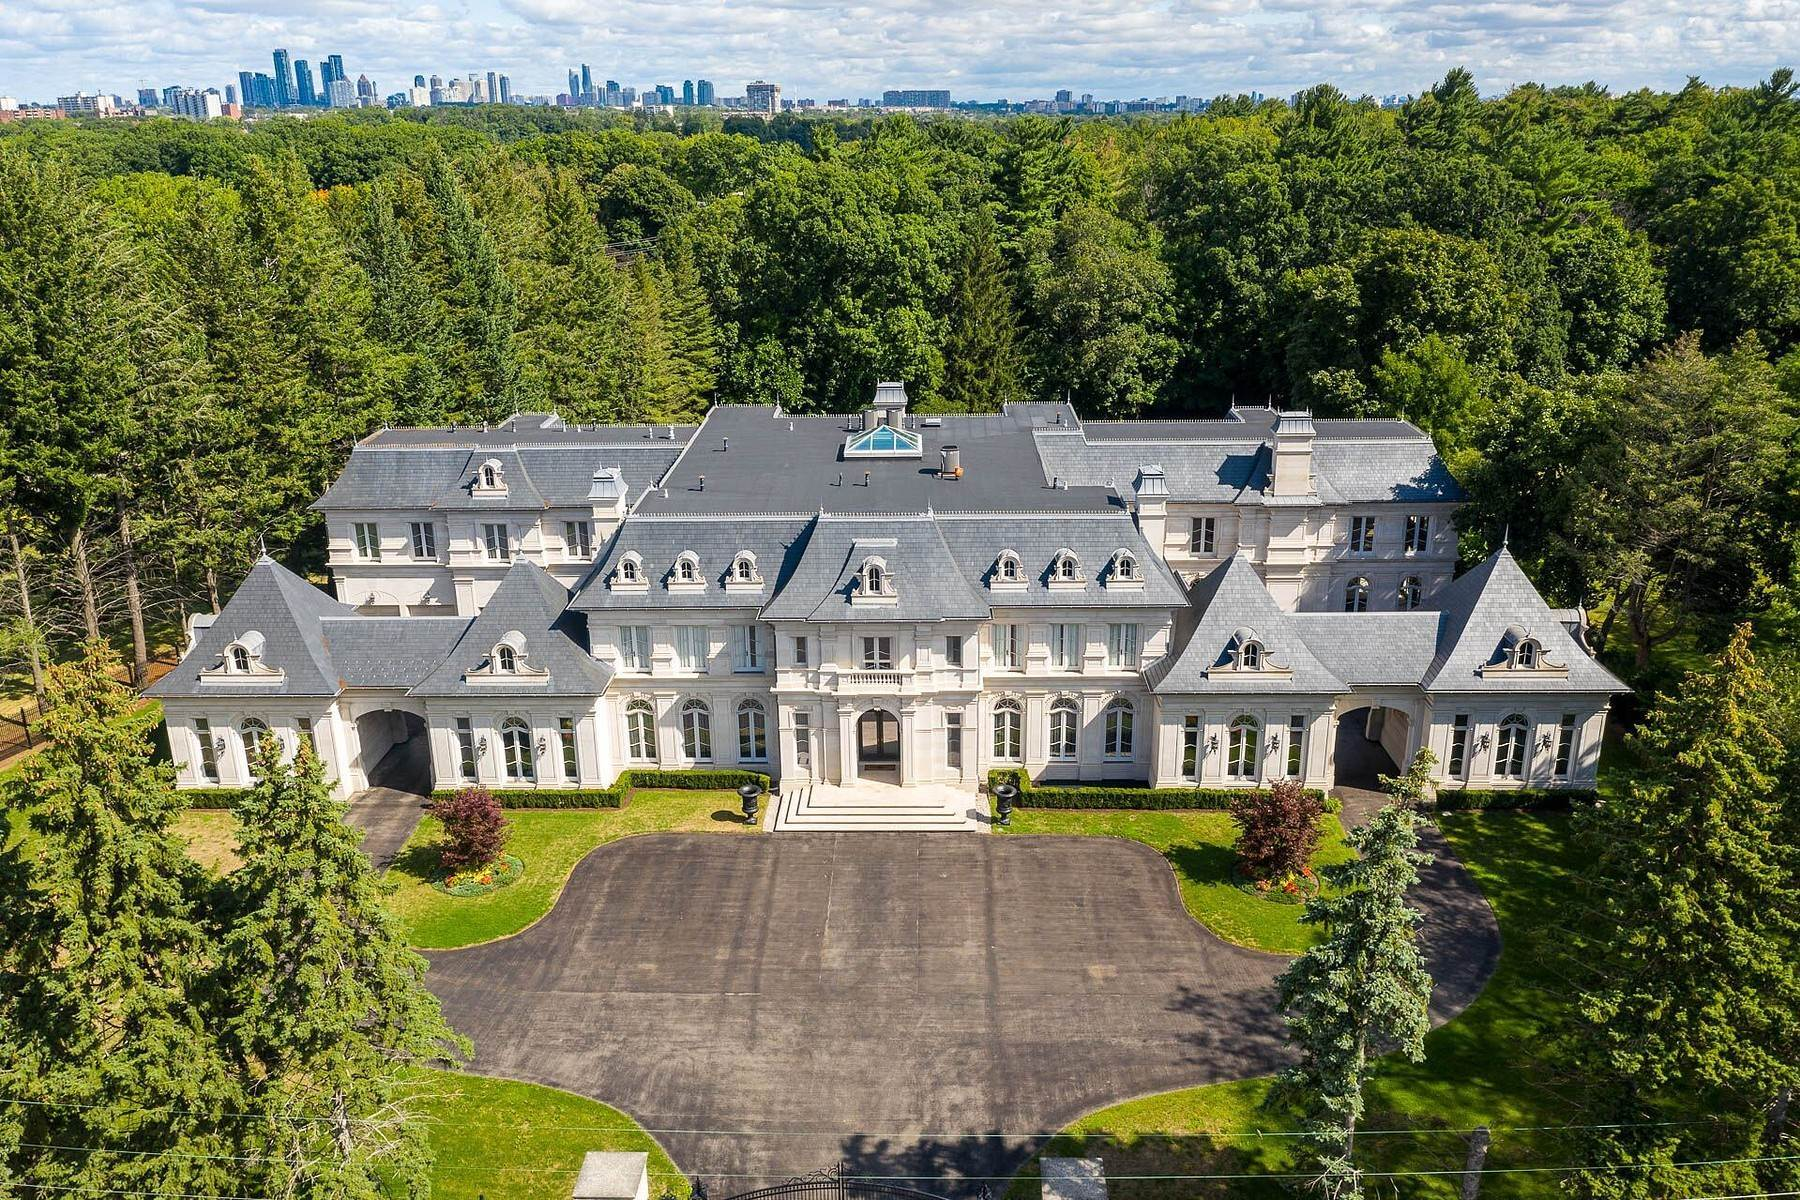 Single Family Homes for Sale at Chateau Inspired Estate 2275 Doulton Drive, Mississauga, Ontario, L5H 3M2 Canada